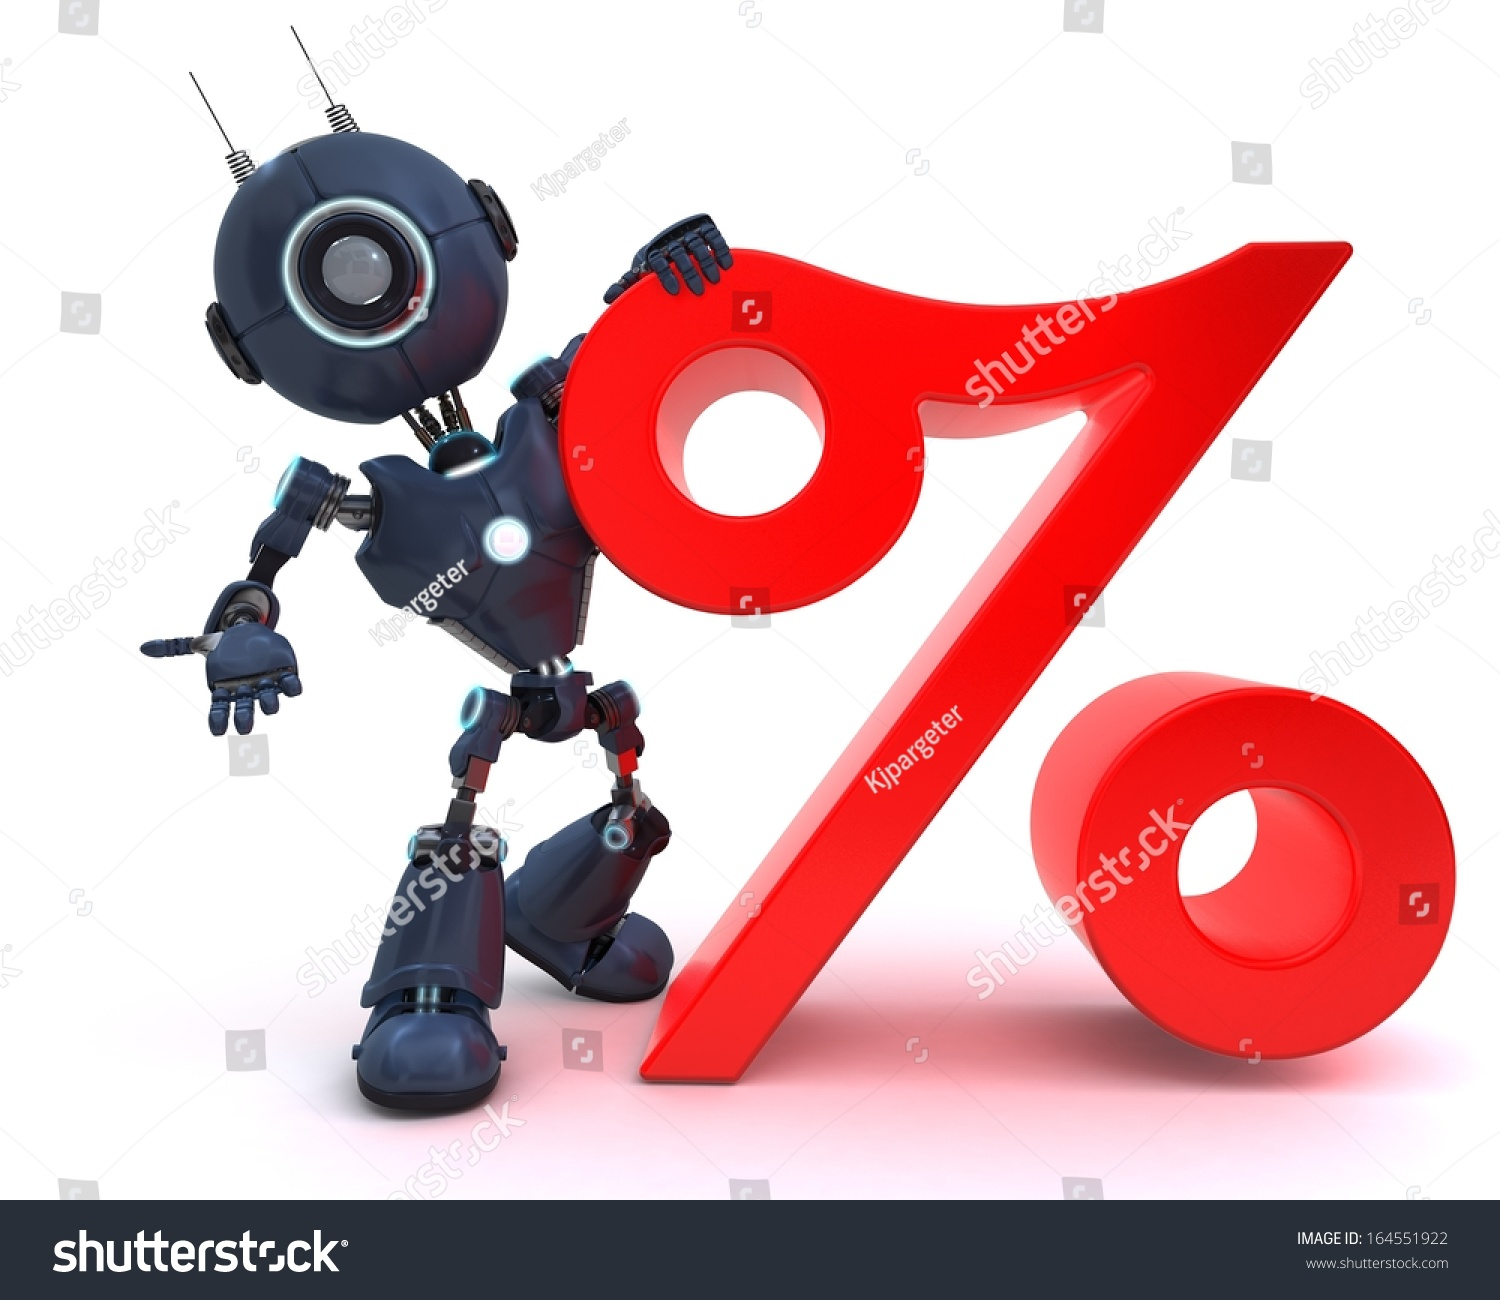 Android ticker symbol gallery symbol and sign ideas android ticker symbol images symbol and sign ideas 3d render android percentage symbol stock illustration 164551922 buycottarizona